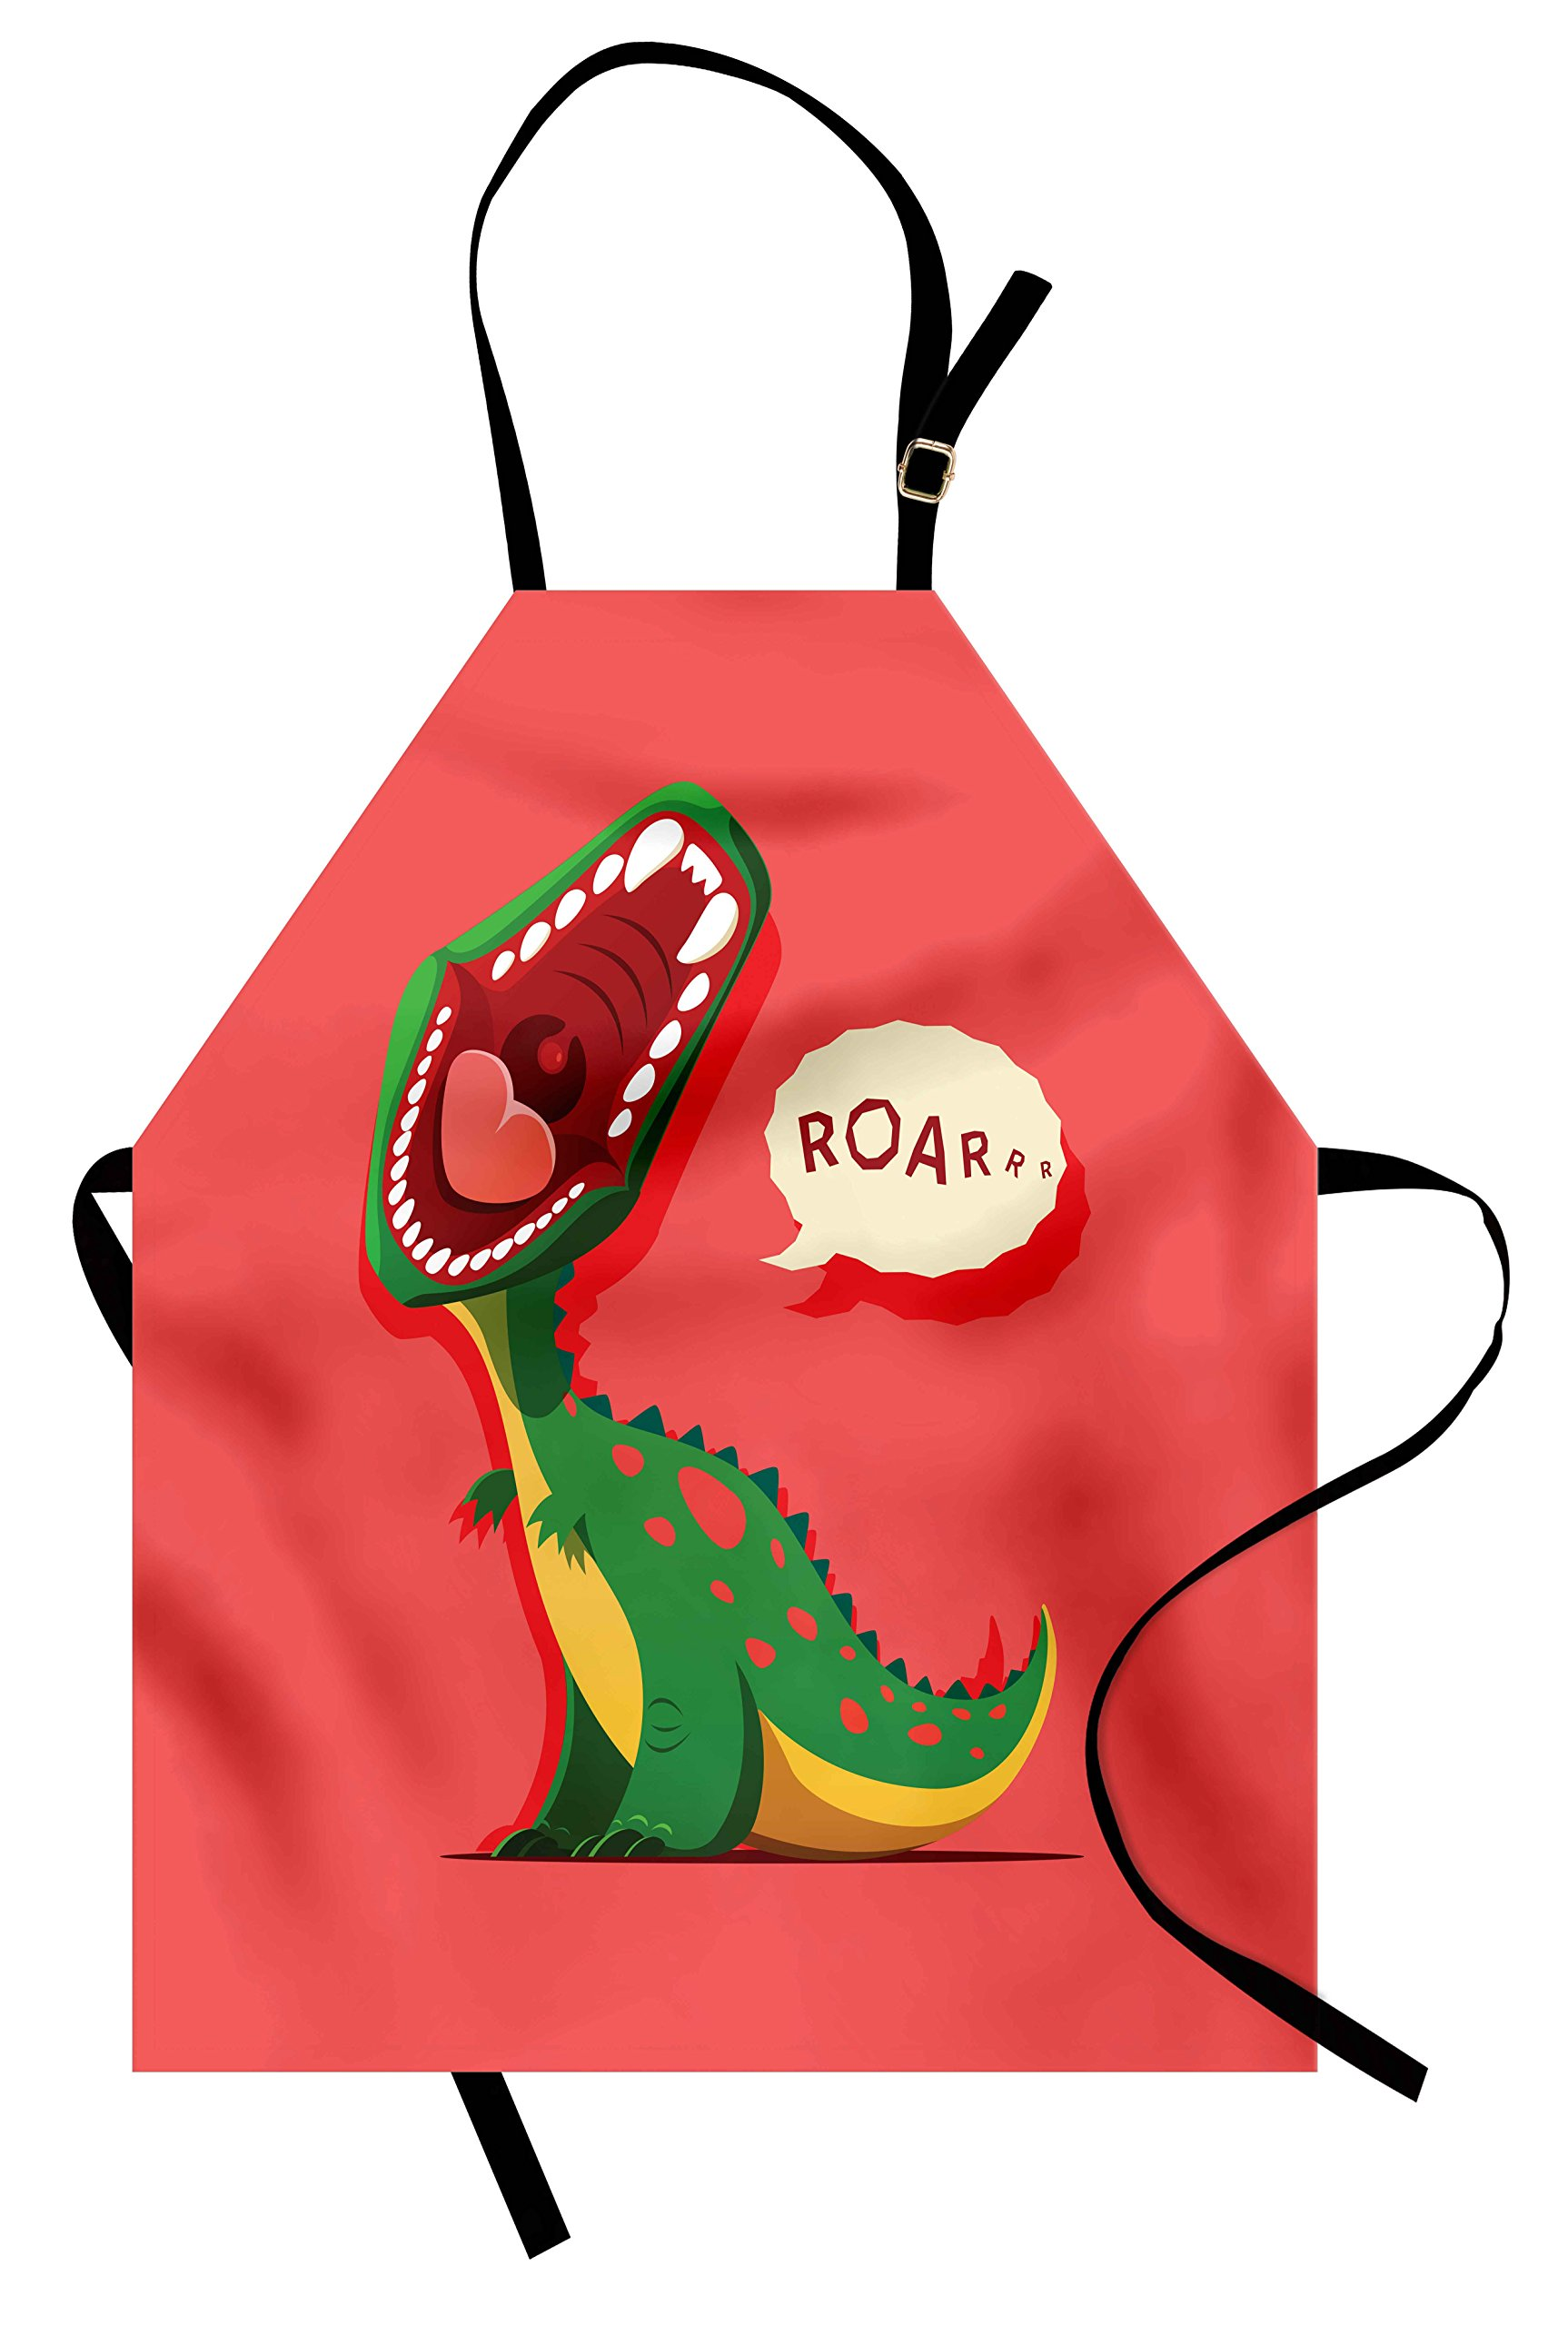 Ambesonne Dinosaur Apron, Aggressive Prehistoric Cartoon Animal Roaring Open Mouth Wildlife Image, Unisex Kitchen Bib Apron with Adjustable Neck for Cooking Baking Gardening, Coral Green Yellow